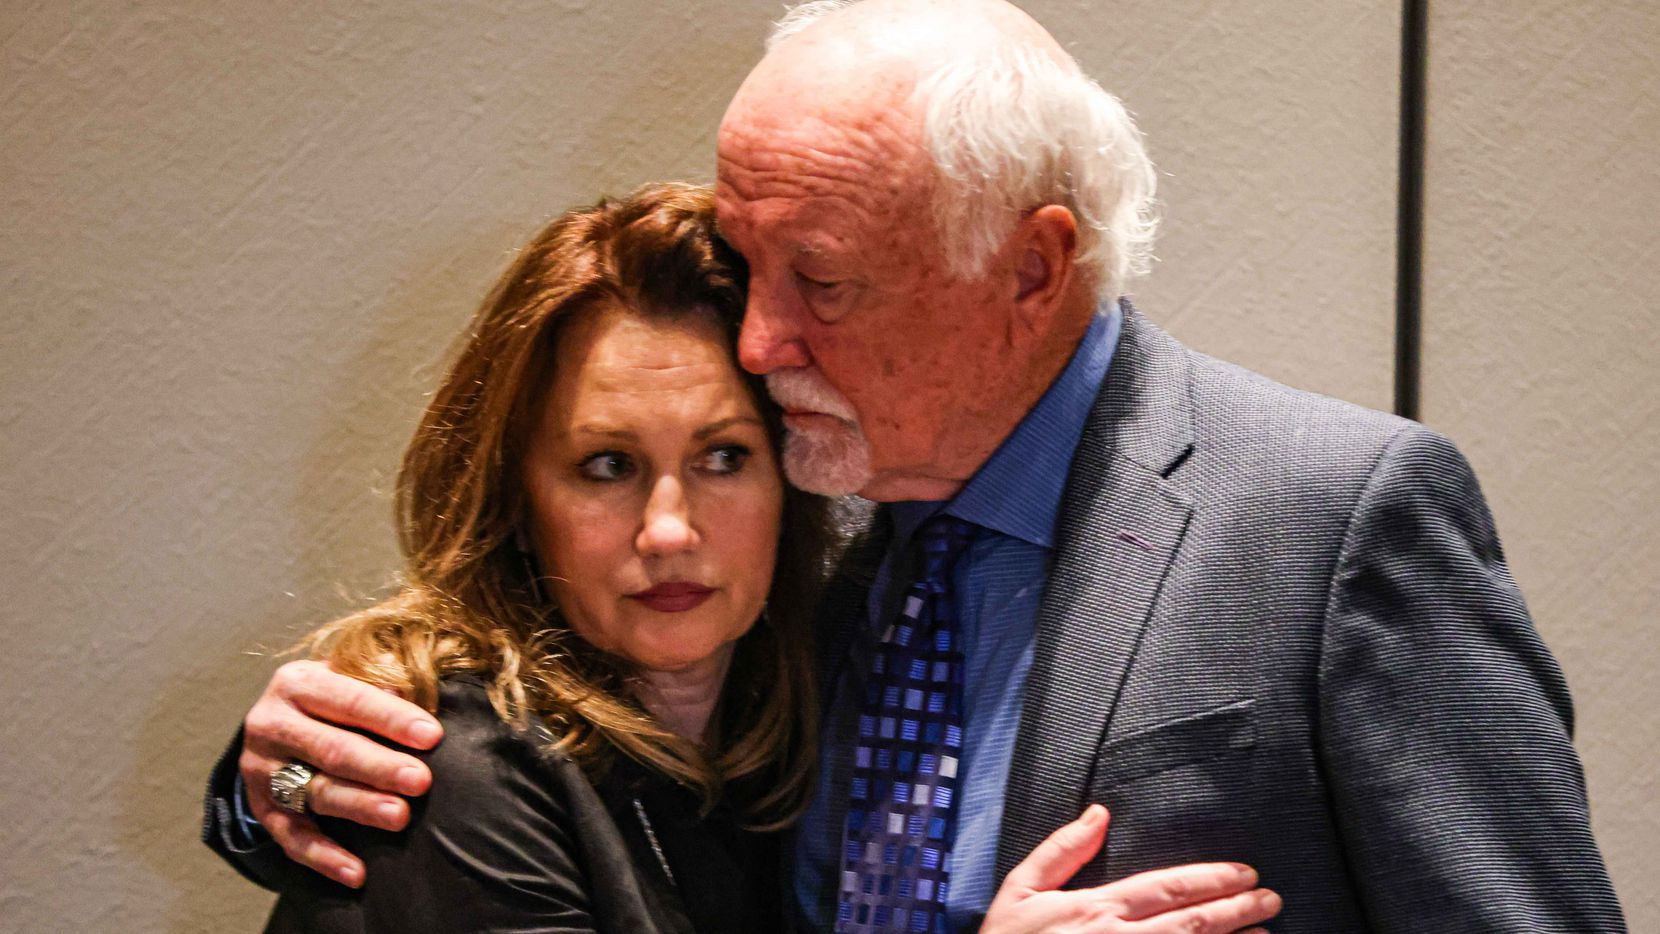 Cliff Harris, former Dallas Cowboys safety, 2020 NFL HOF, holds his wife, Karen Harris, after a press conference with families who say their mothers were killed by Billy Chemirmir, to promote legislation filed which they say will help improve security at senior living communities in Plano on Wednesday, March 10, 2021.